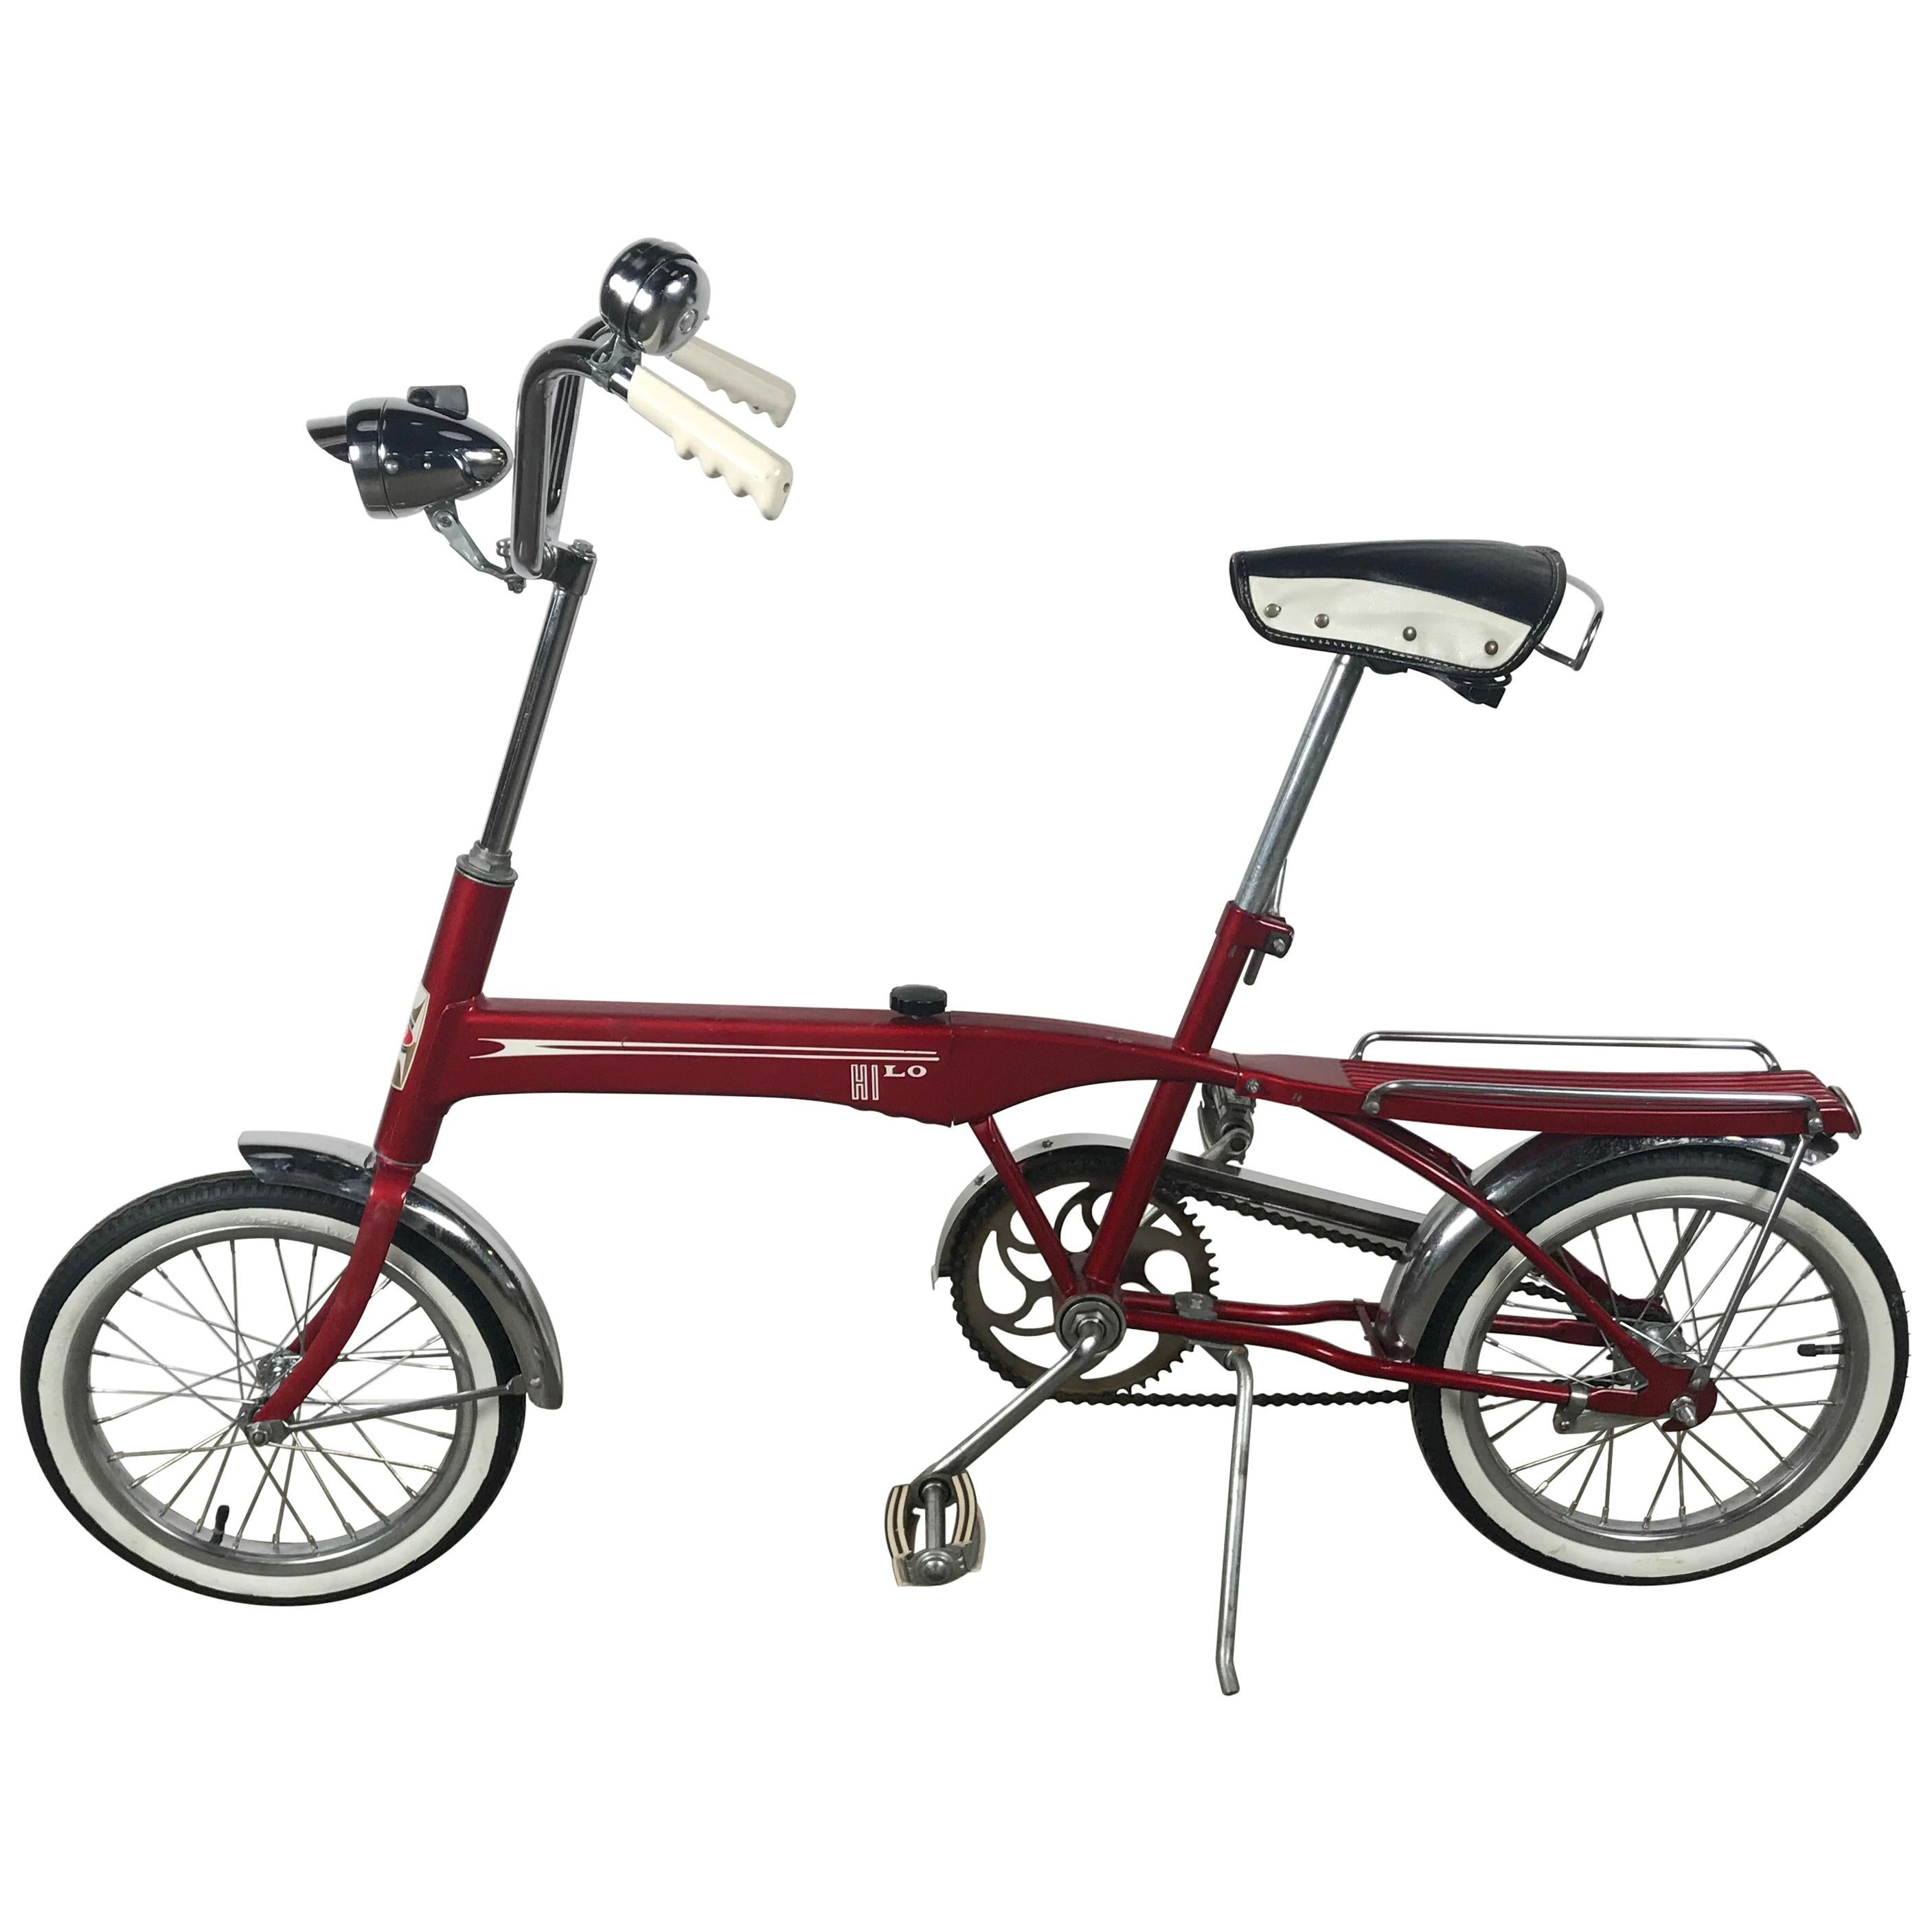 Rare Hi-Lo Collapsible Modernist Bicycle by Cleveland Company MDT